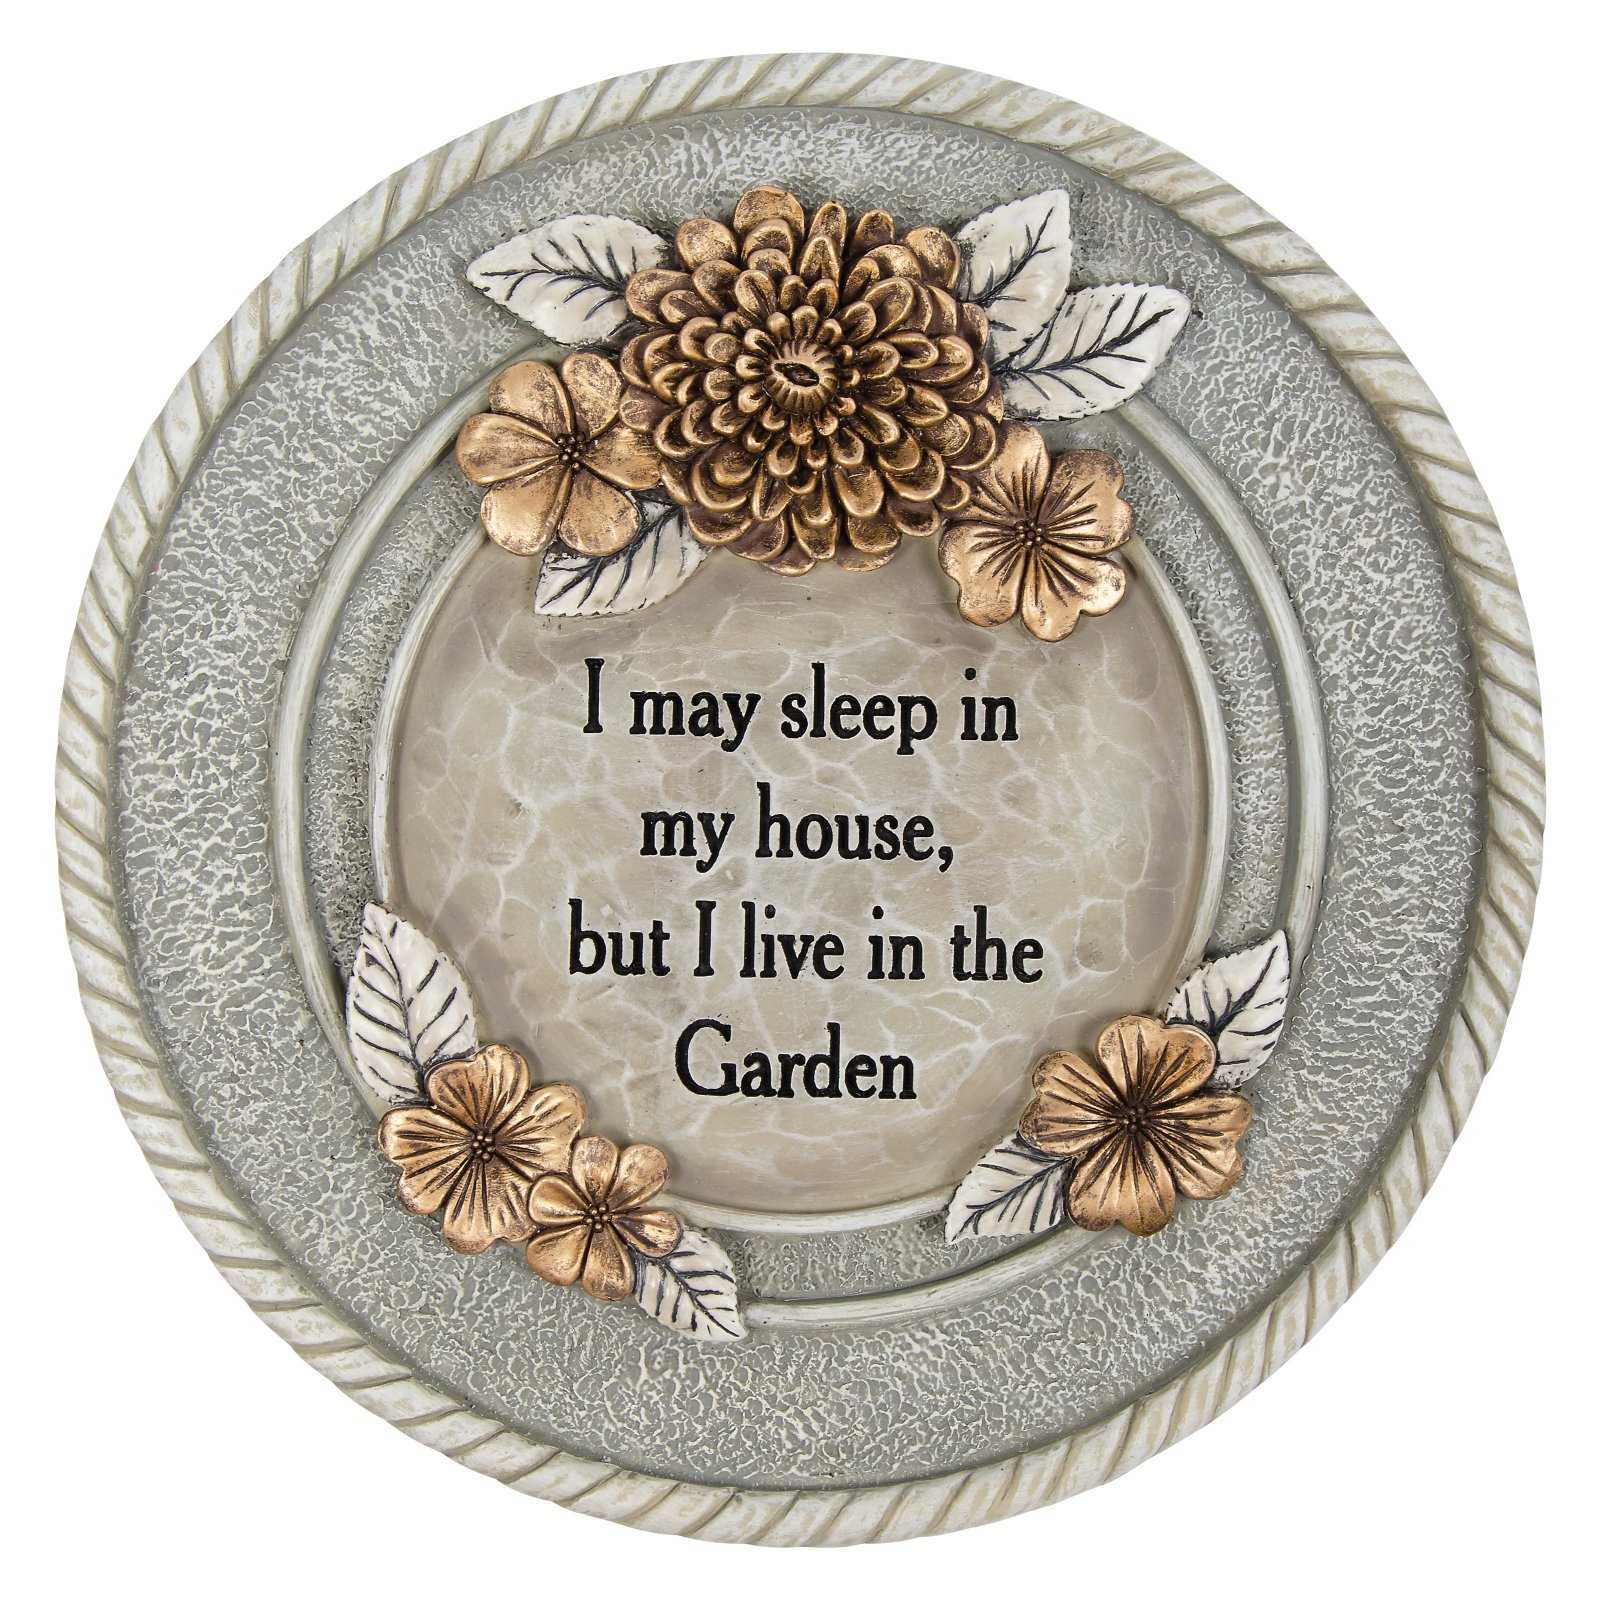 Carson Home Accents Live in Garden Stepping Stone by